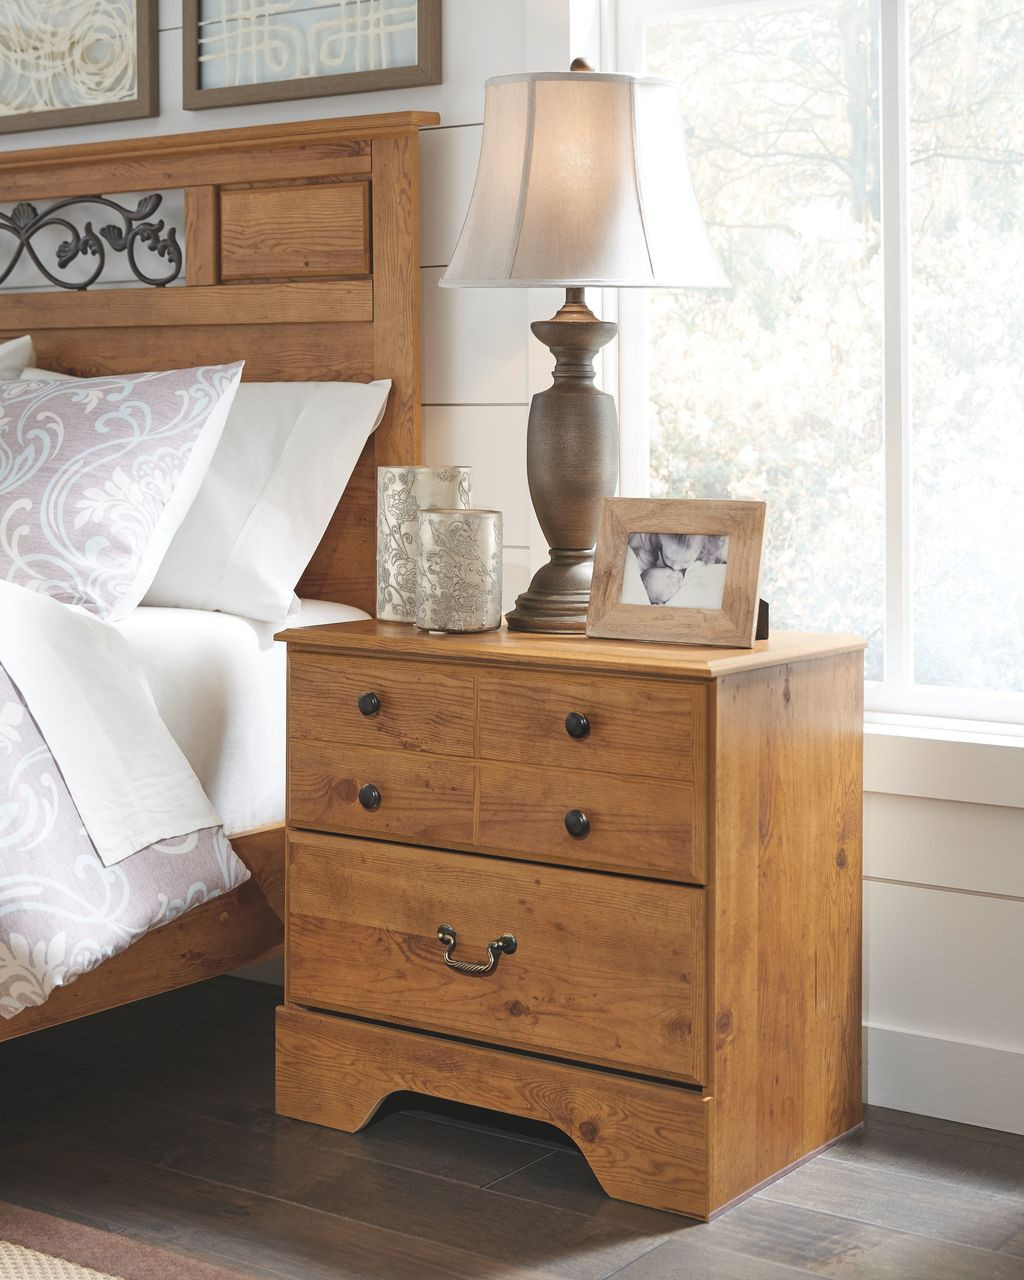 84bba8a311e9 The Bittersweet Light Brown Two Drawer Night Stand available at Logan  Furniture serving Dorchester